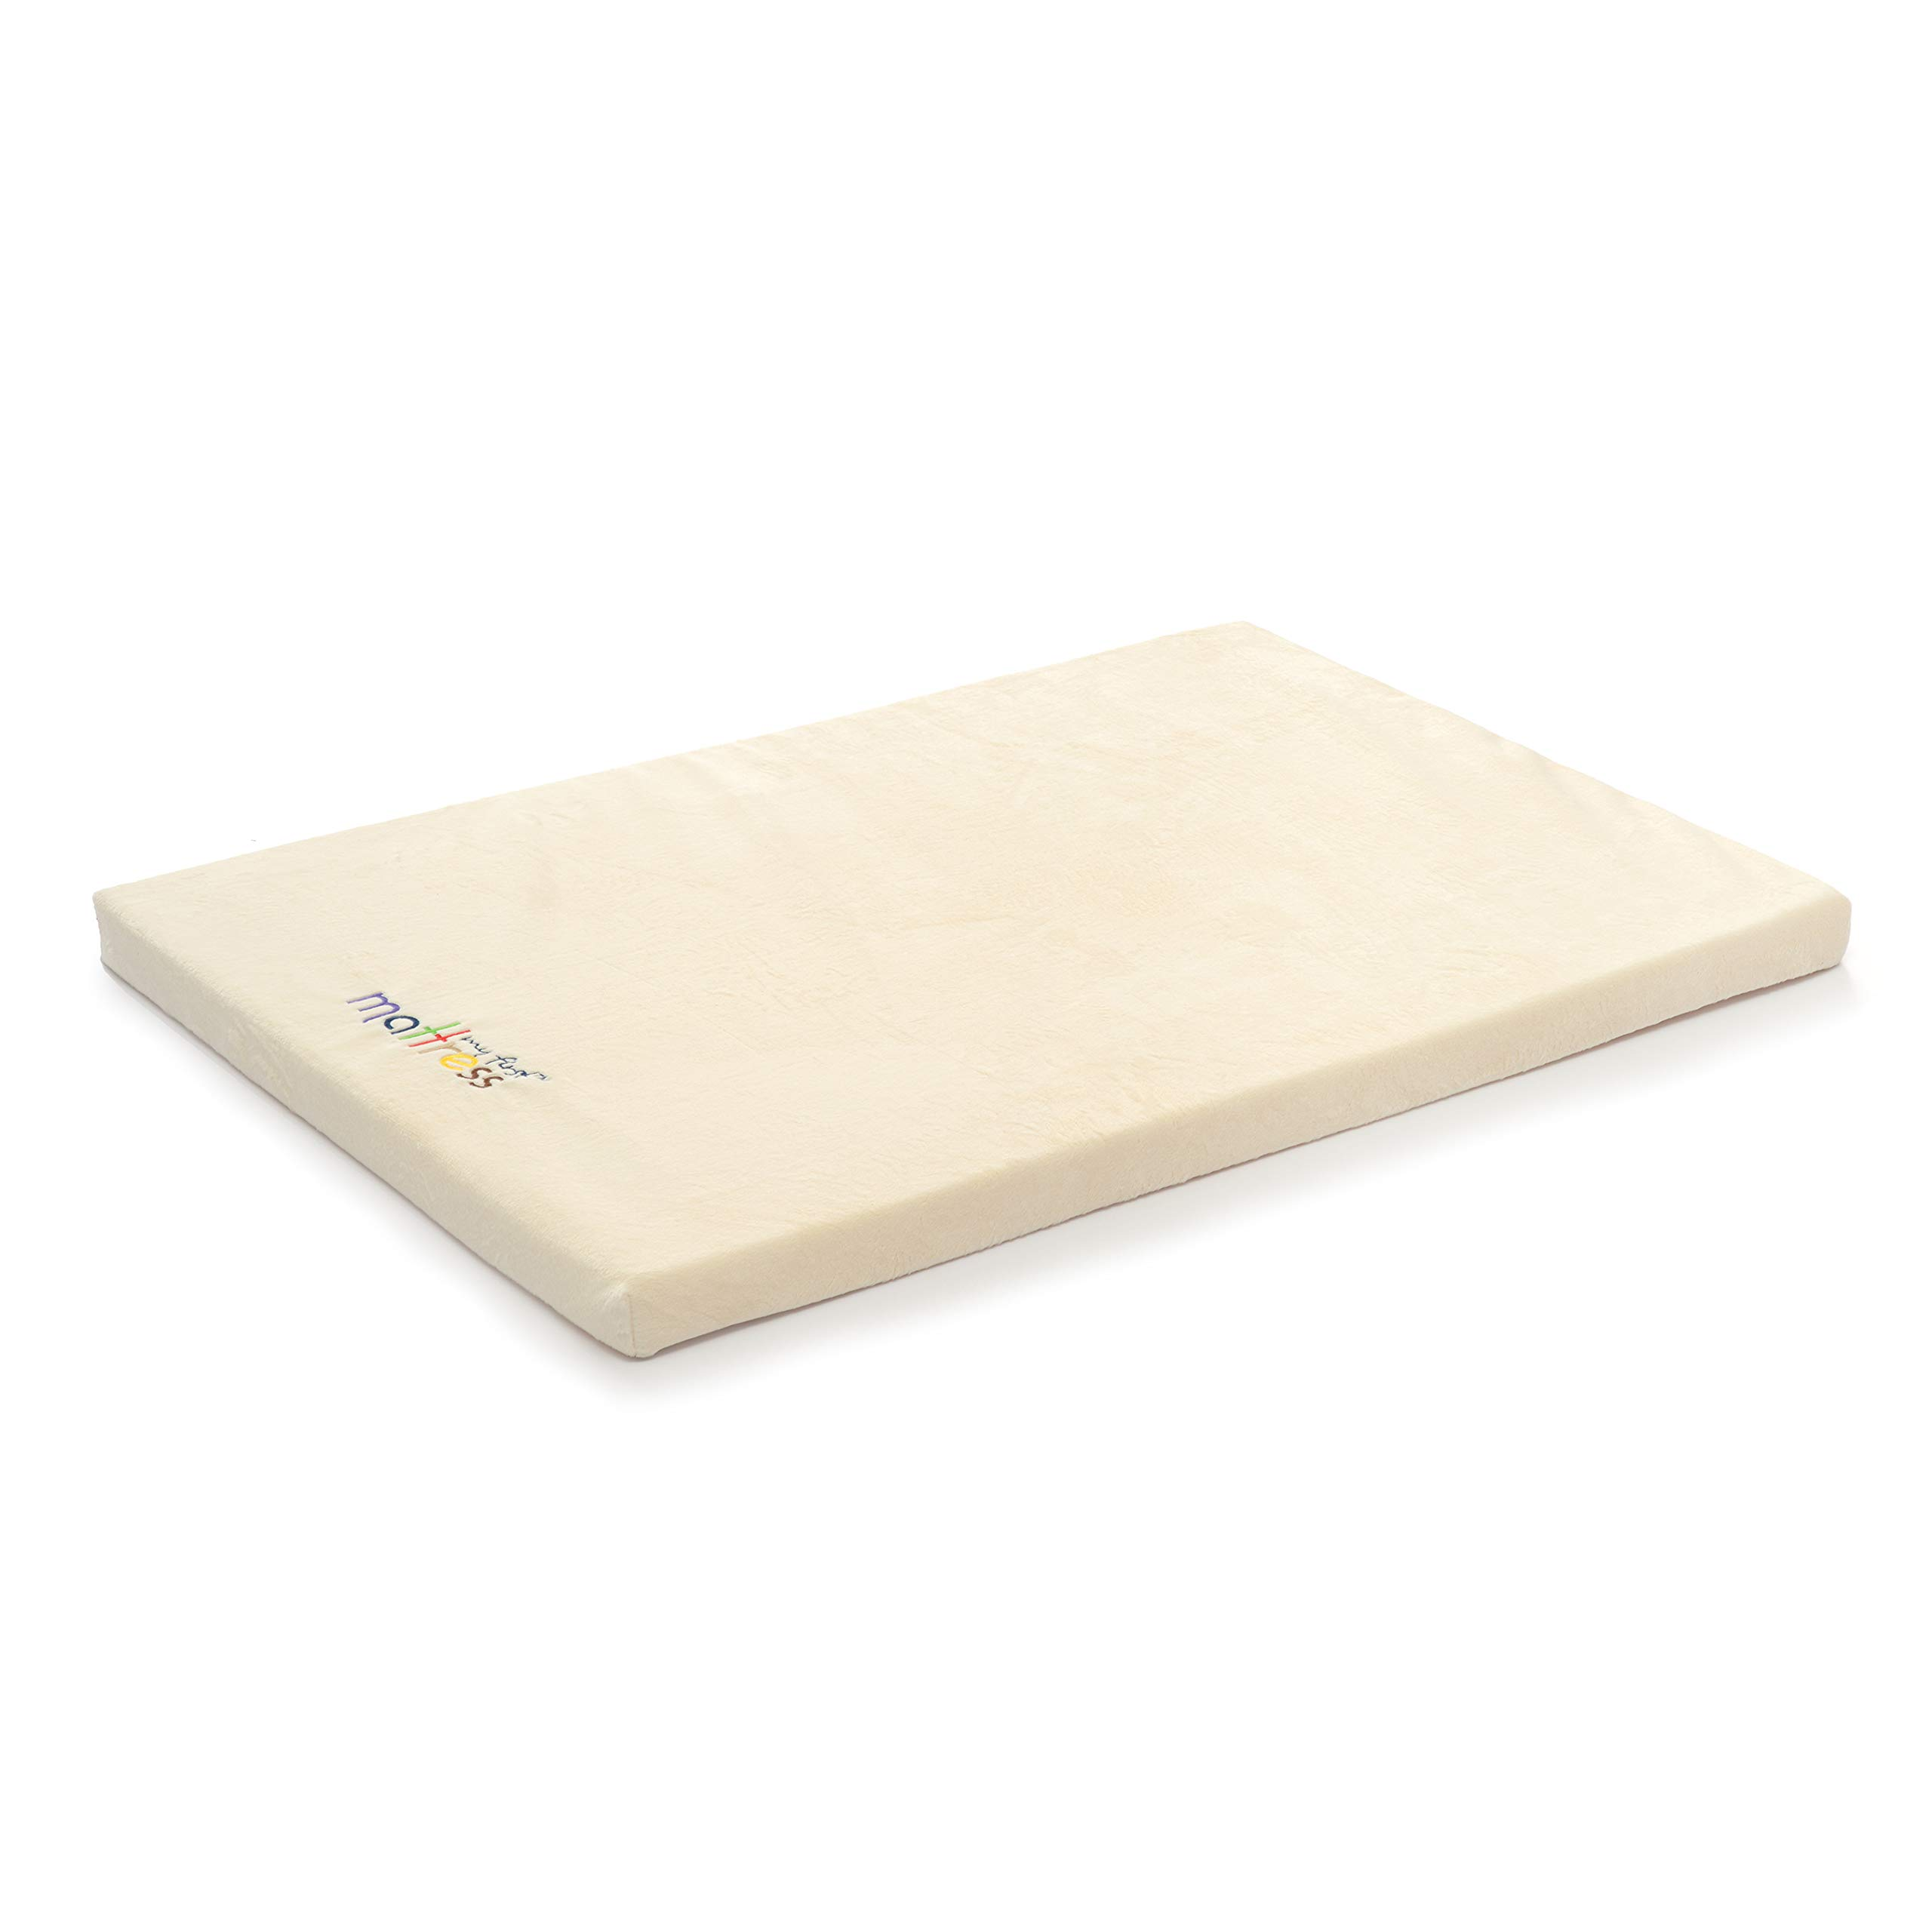 My First Pack N Play Mattress Pad or Mini Crib Pad, 37